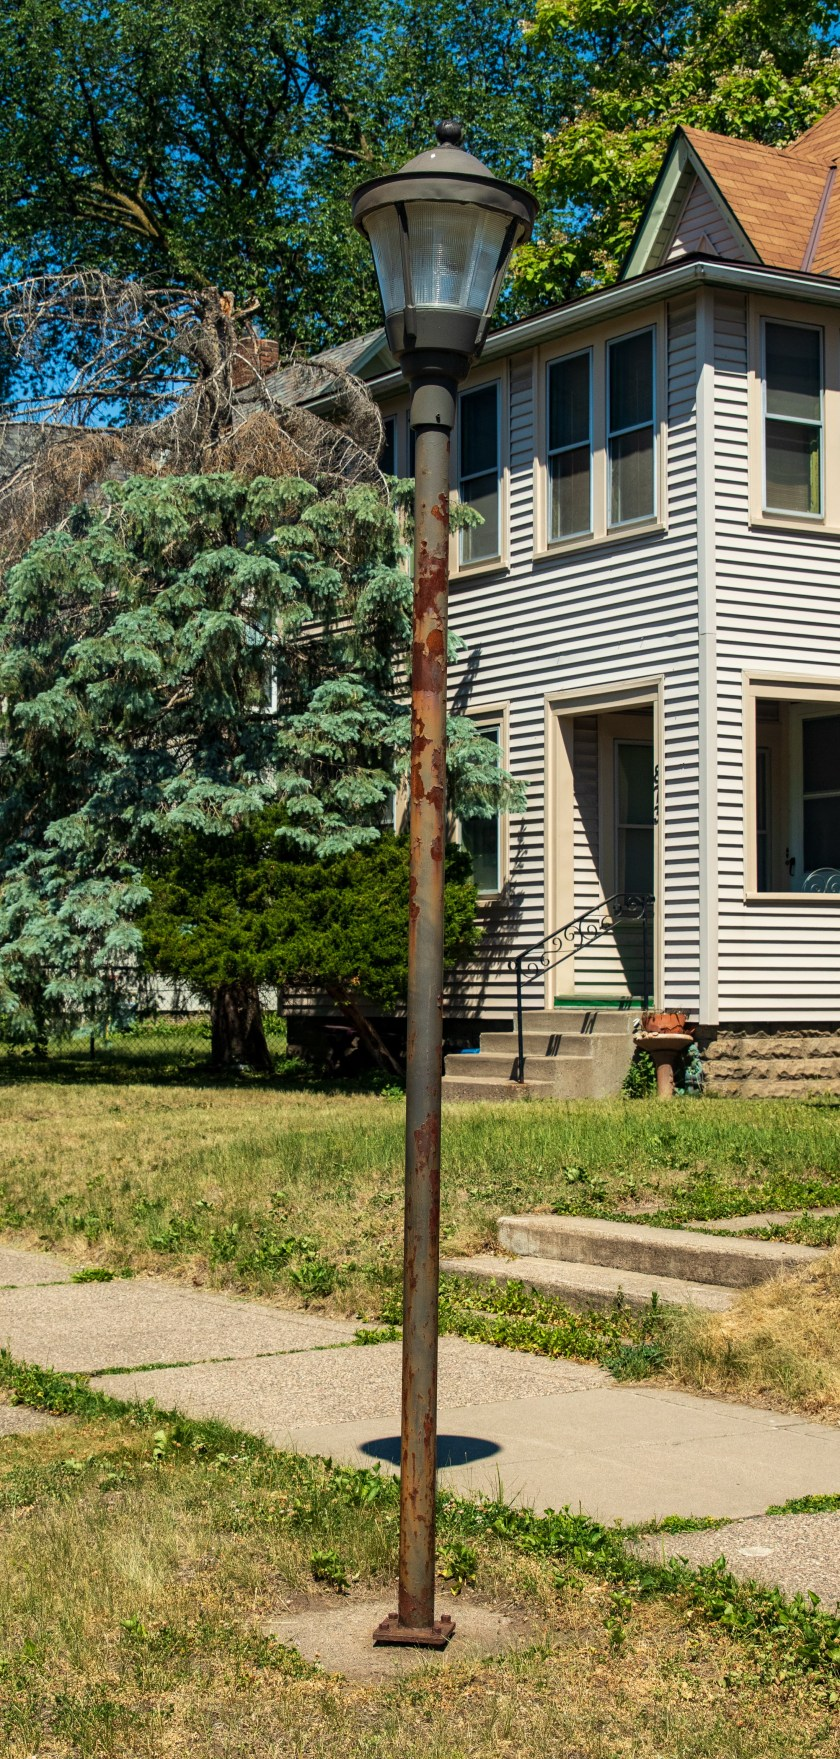 The 860 block of Iglehart Avenue West has a couple of these old street lamps, which are significantly shorter and thinner than street lamps elsewhere in Saint Paul.